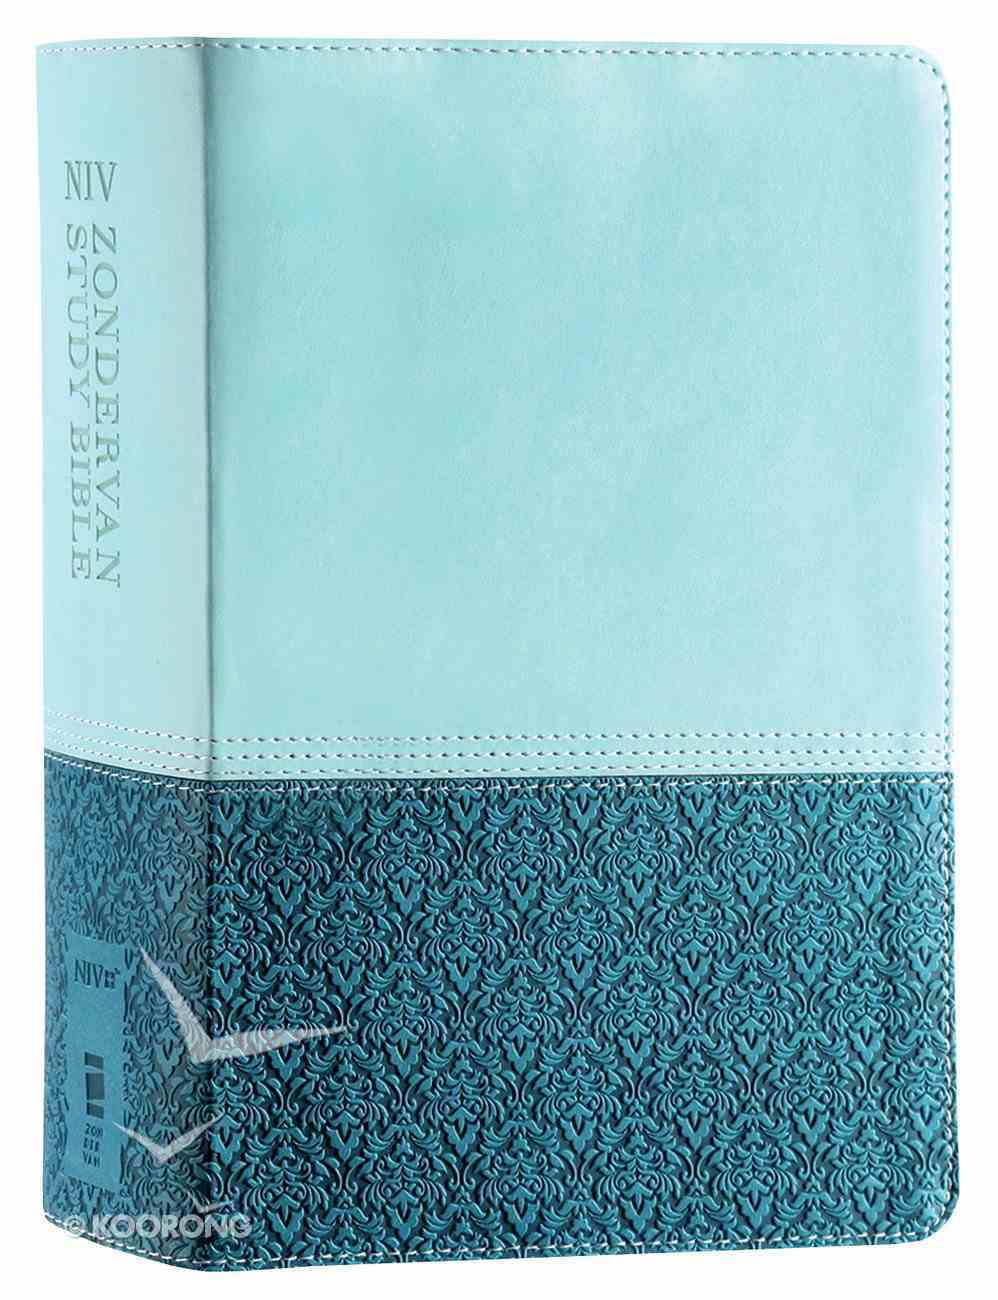 NIV Zondervan Study Bible Full Colour Personal Size Sea Glass Caribbean Blue (Black Letter Edition) Premium Imitation Leather